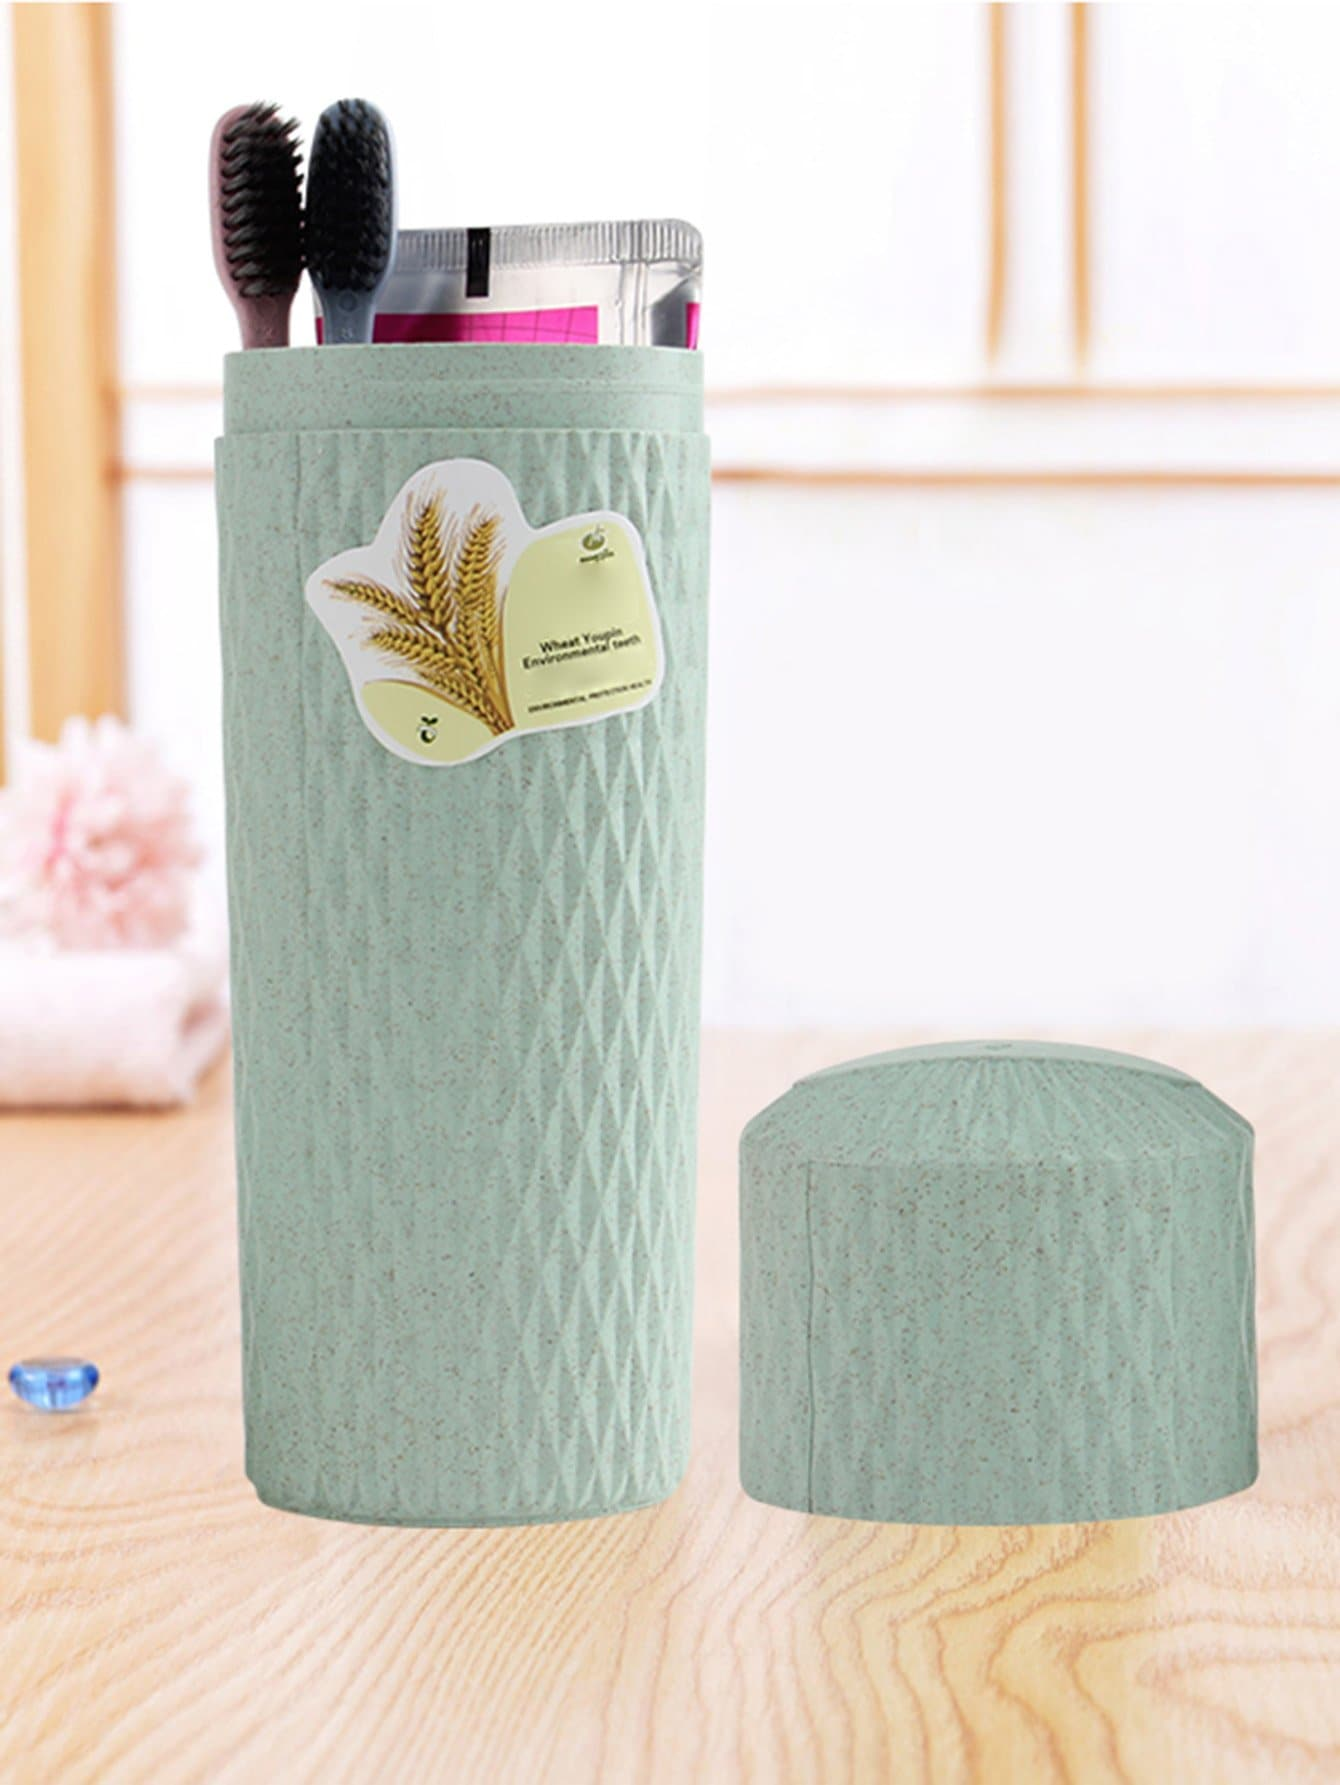 Toothbrush Holder With Lid creative wave style pp lid rack mount holder green